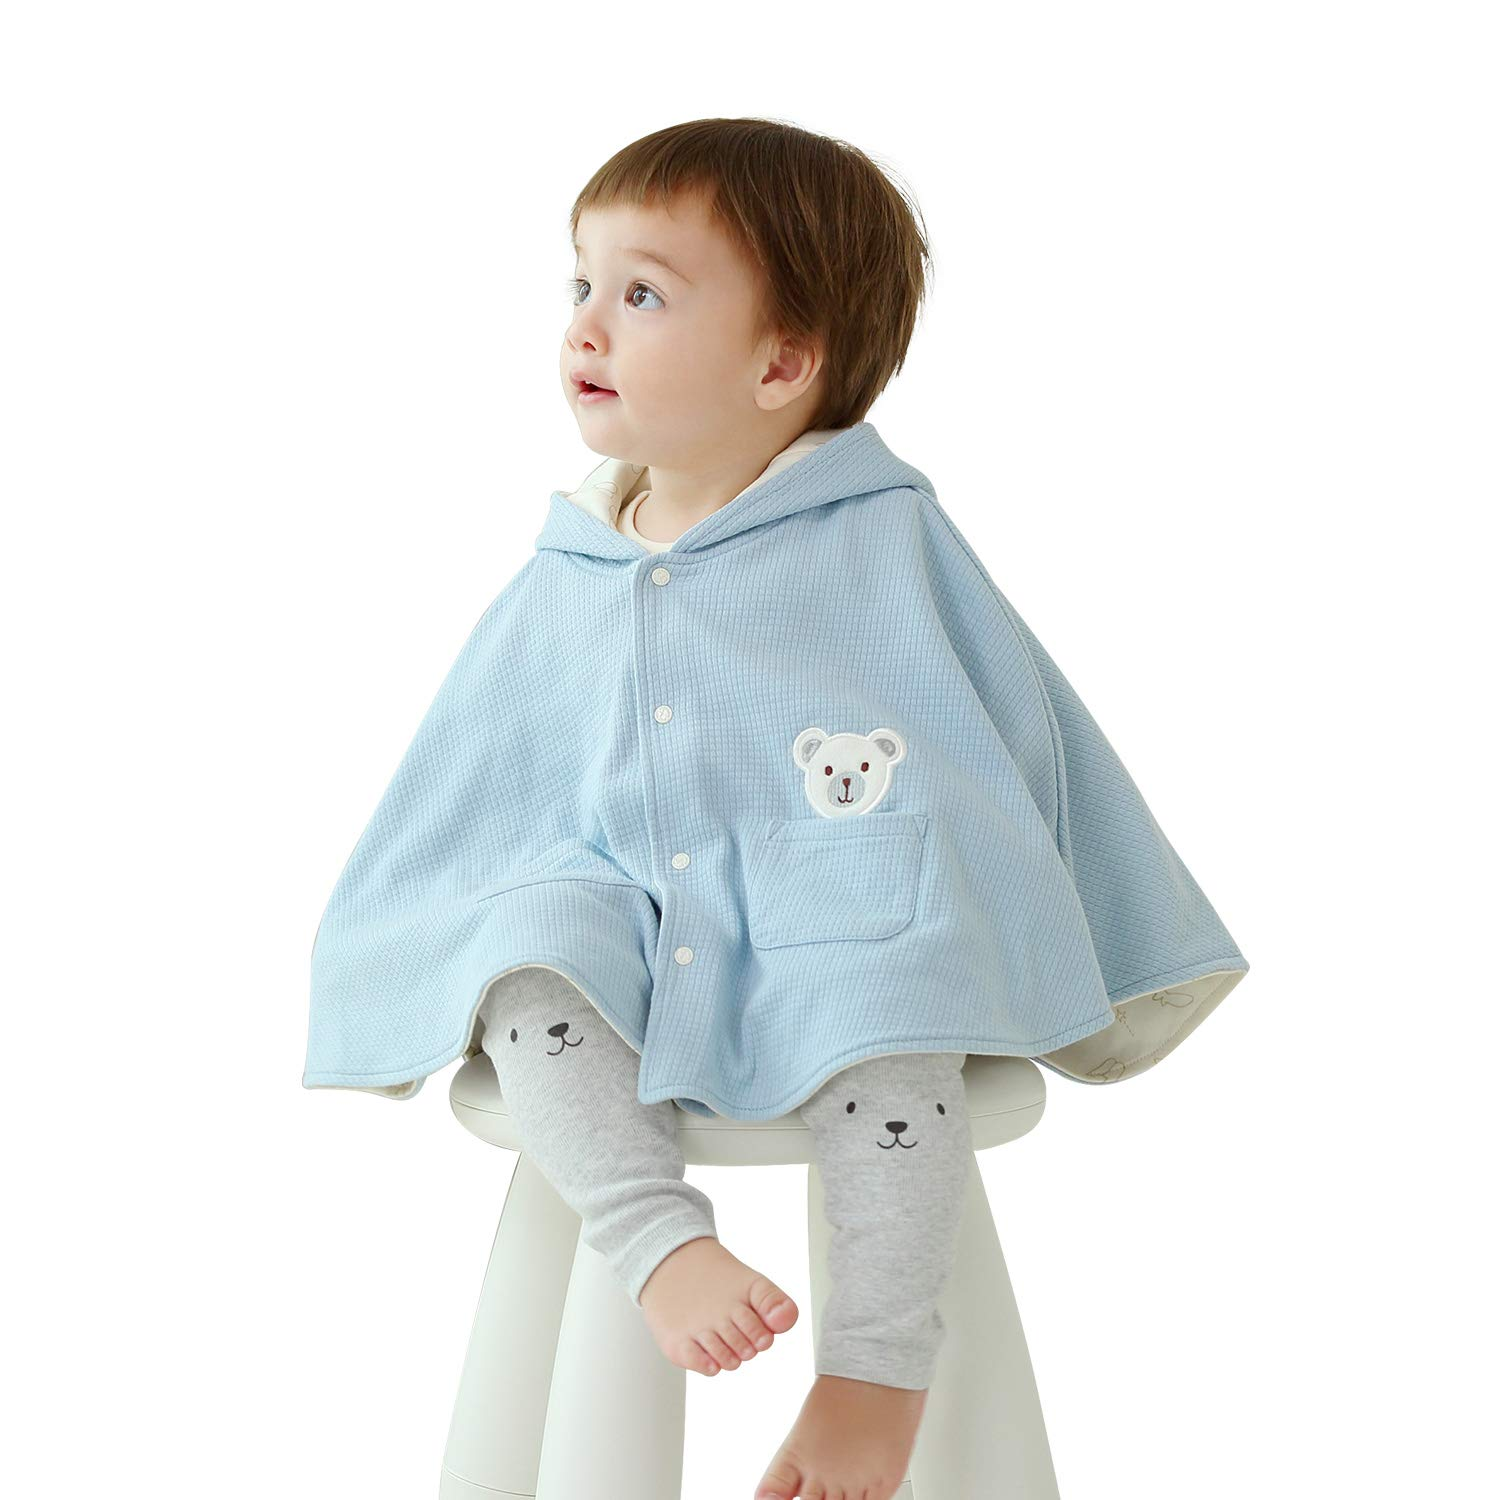 pureborn Toddler Baby Boys Cotton Hooded Cartoon Bear Carseat Poncho Cloak Blue 1-3 Years by pureborn